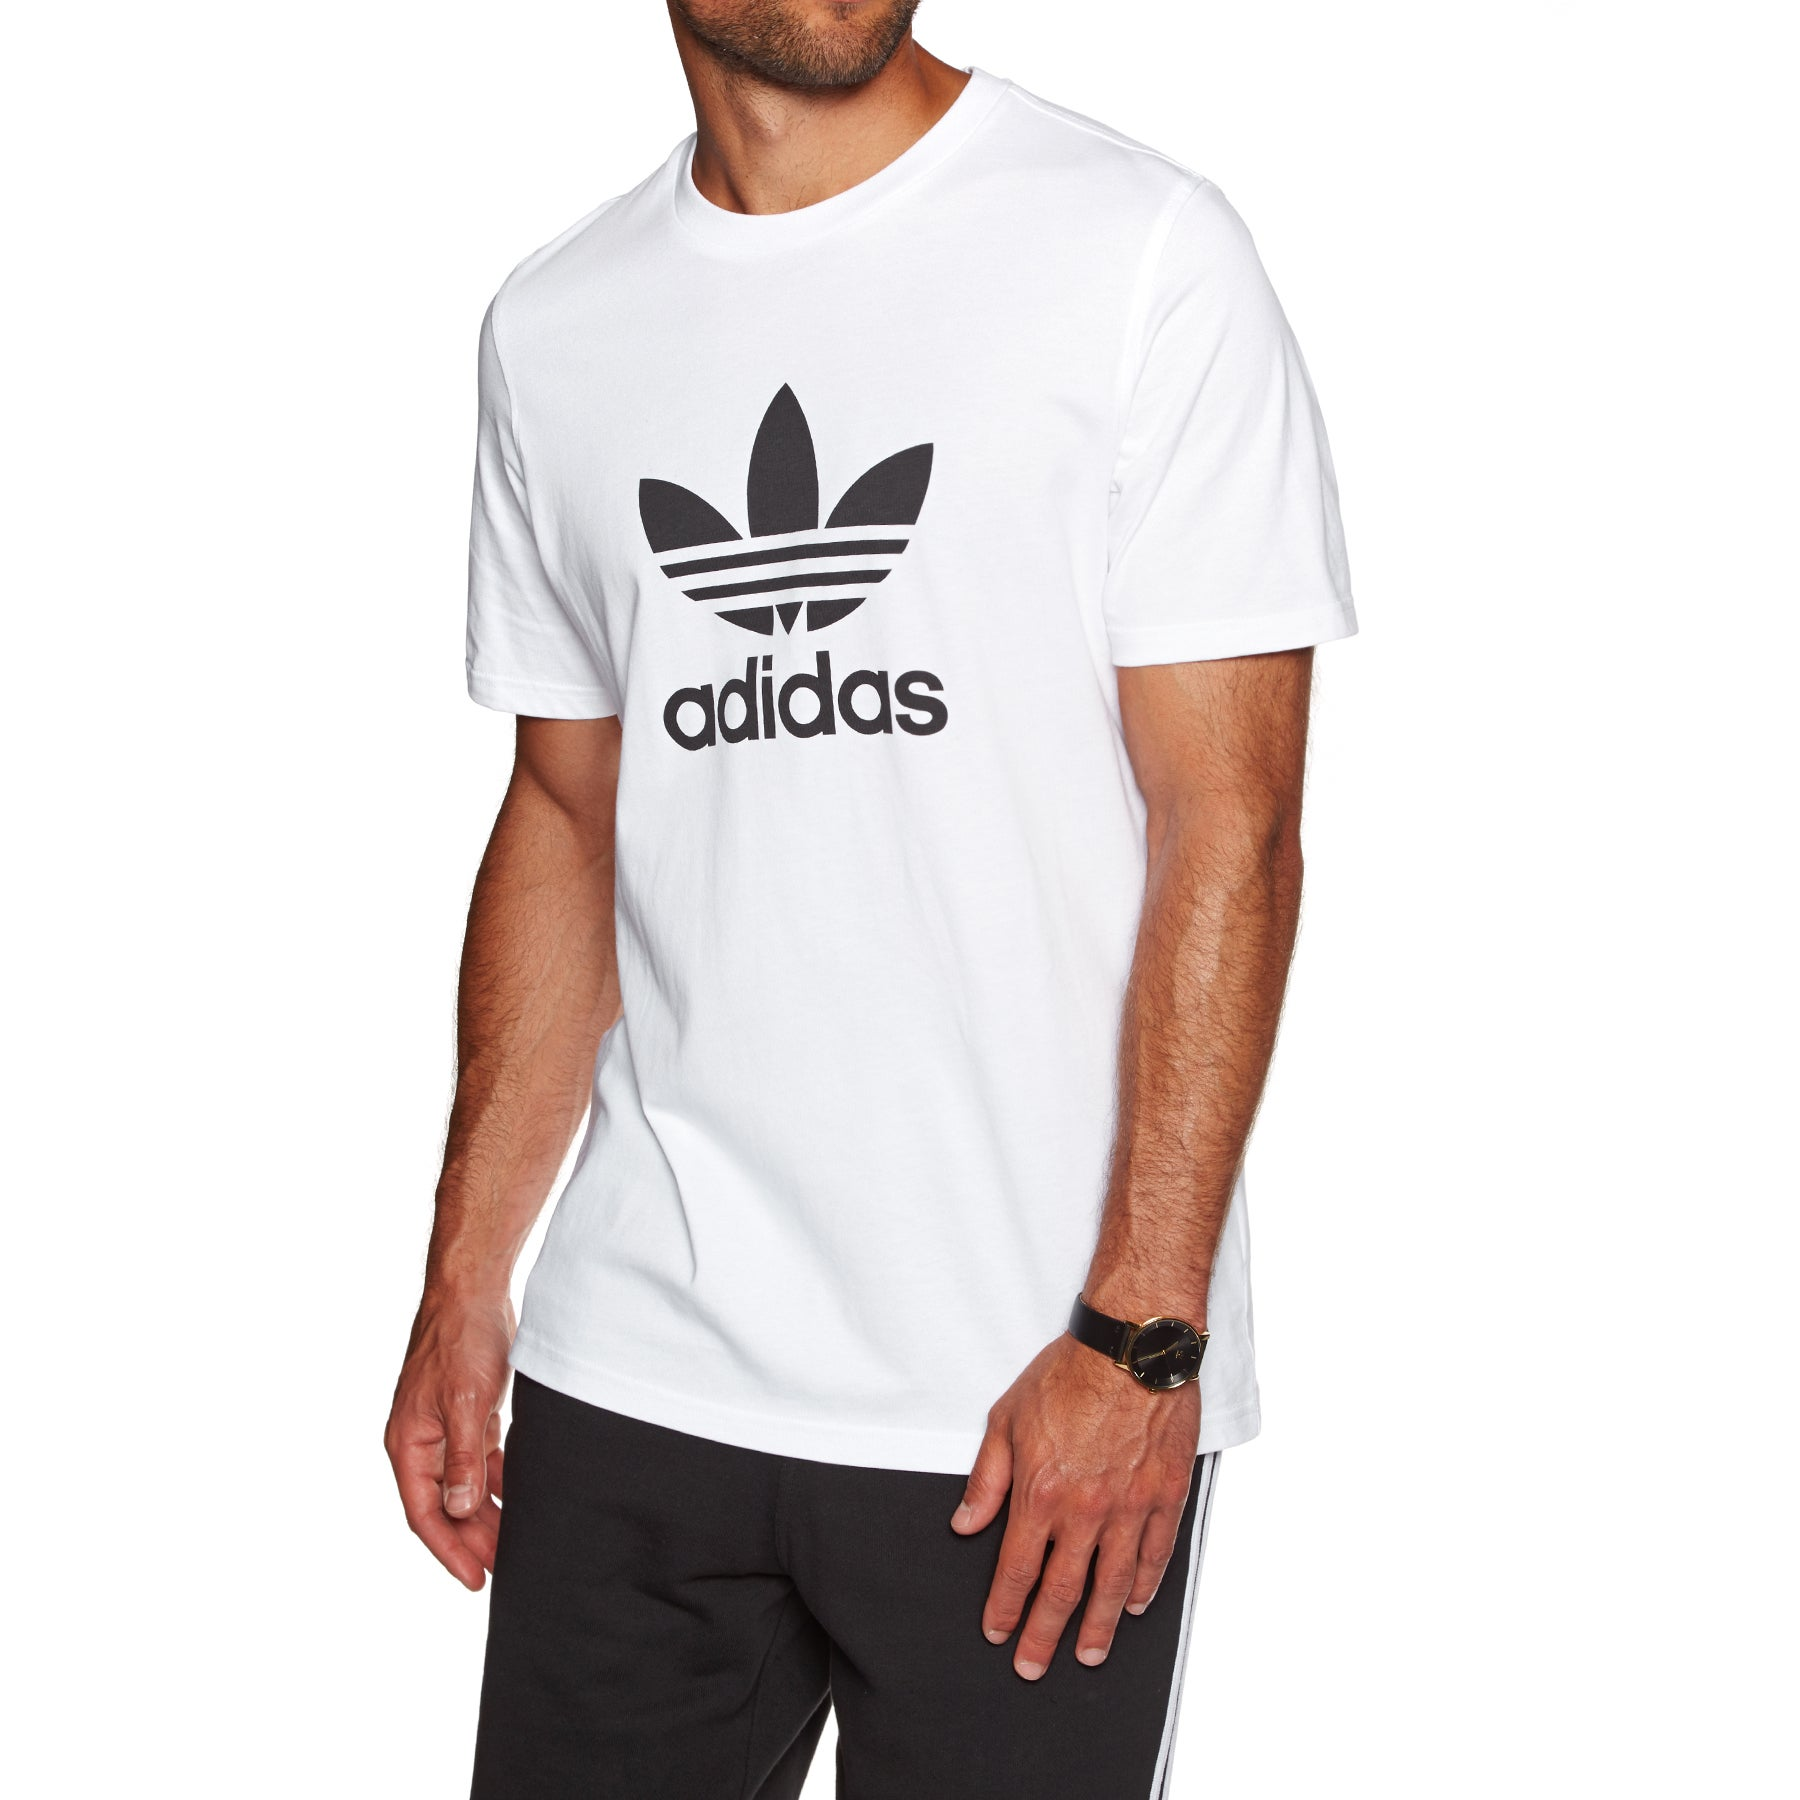 Adidas Originals Trefoil Short Sleeve T-Shirt - White